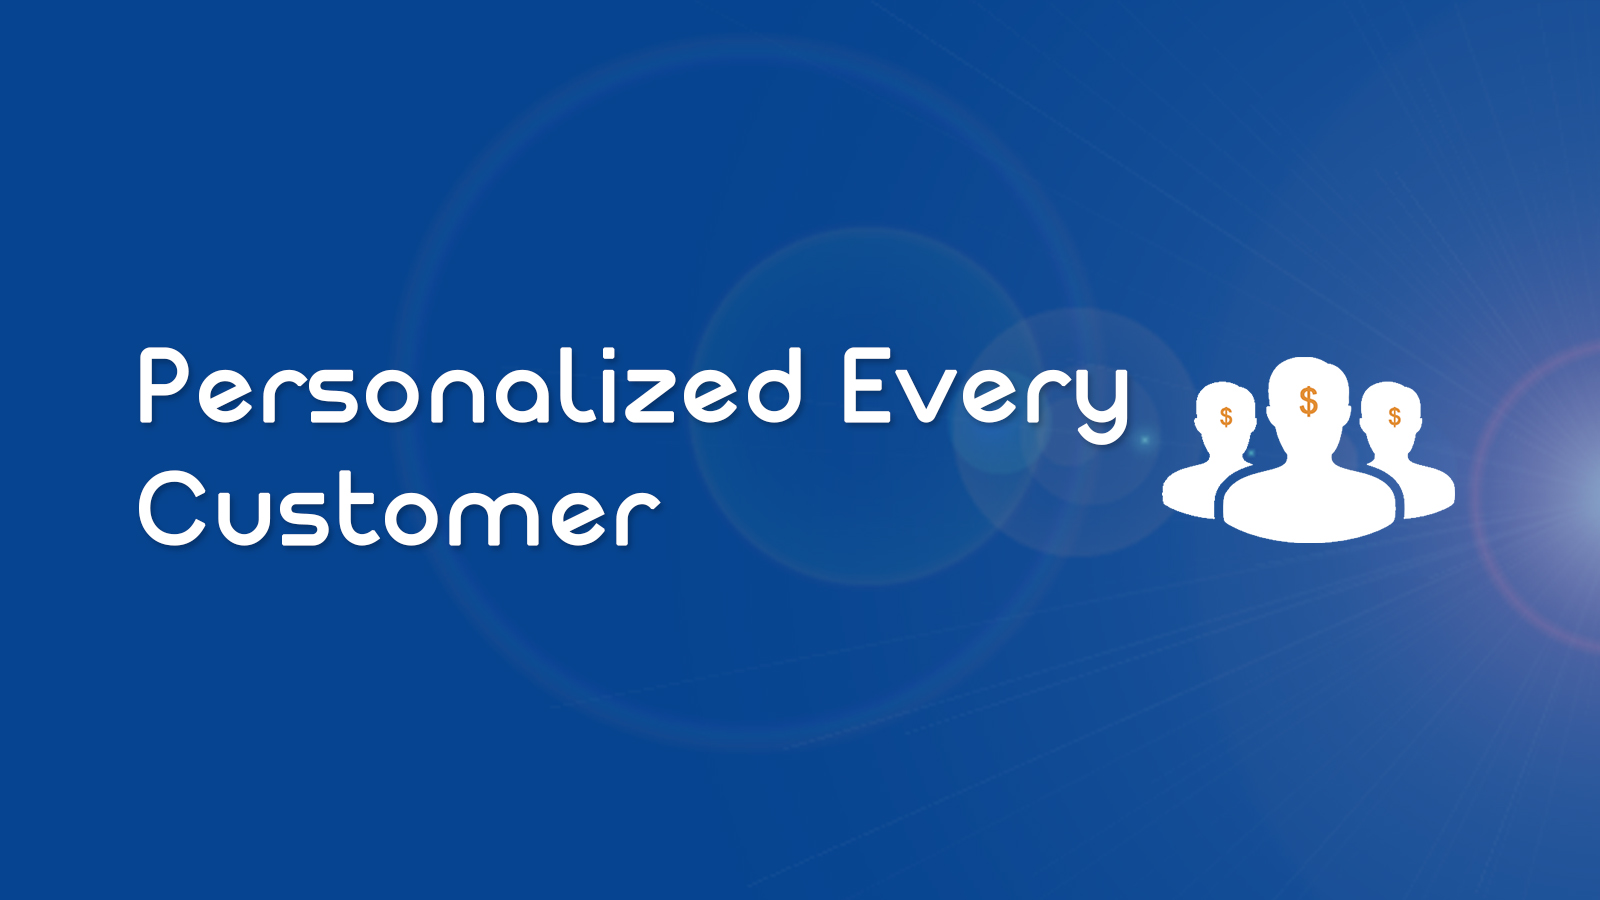 personalized-every-customer